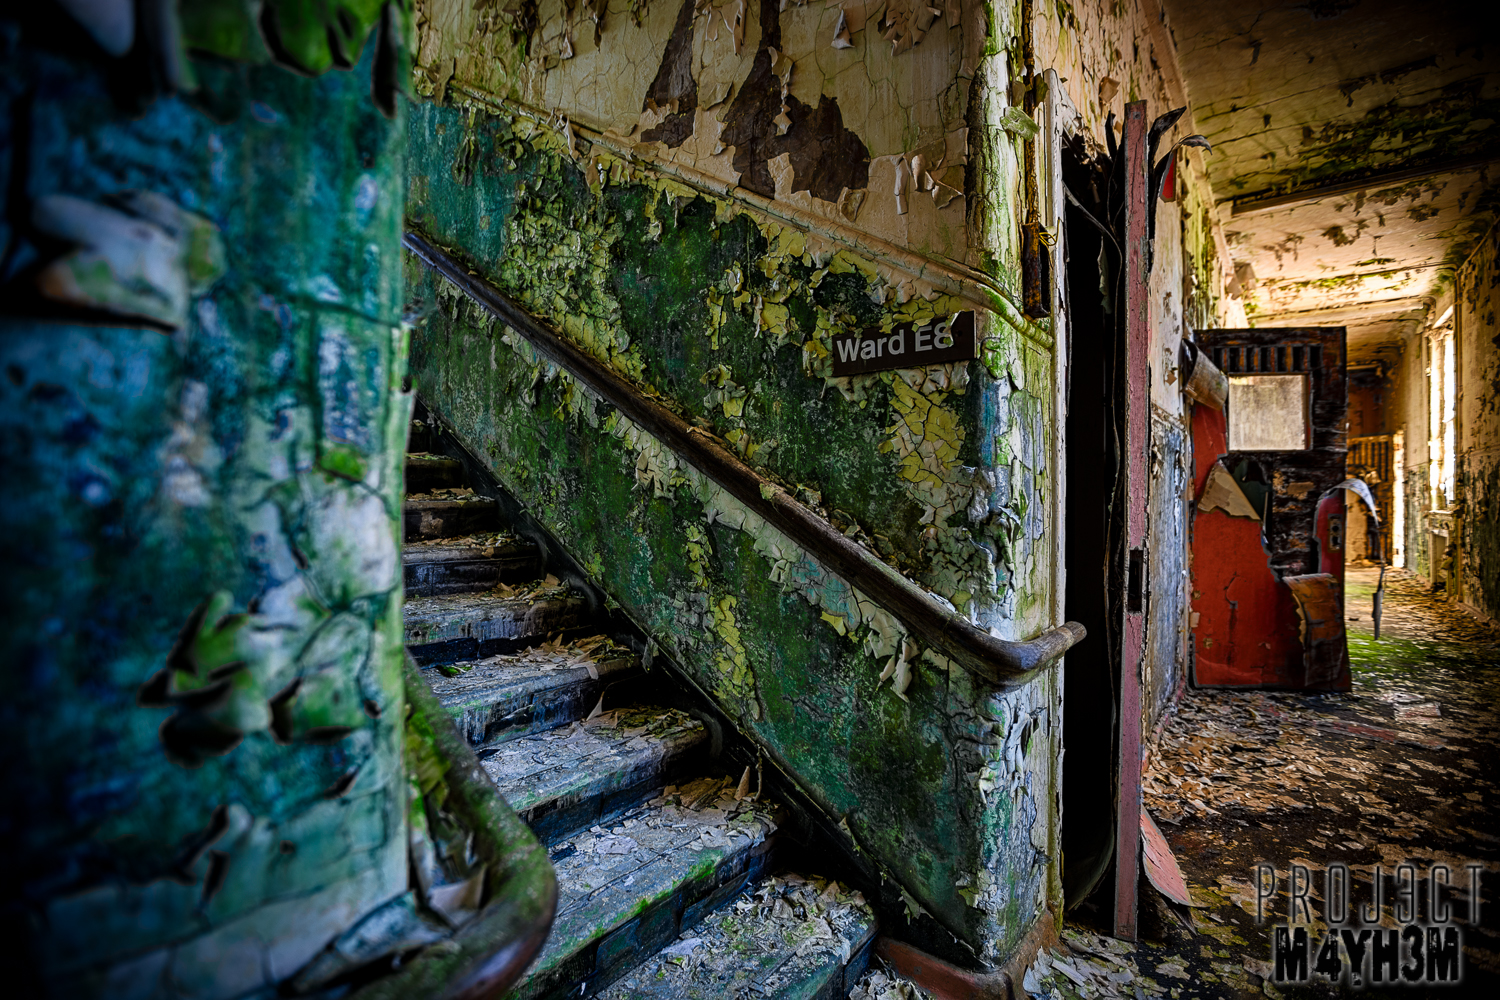 Built in 1903 the Mid Wales Hospital,Talgarth was originally a Lunatic Asylum but later functioned as a Hospital specialising in the treatment of the mentally ill. Abandoned since 1999 the hospital buildings have fallen into disrepair...